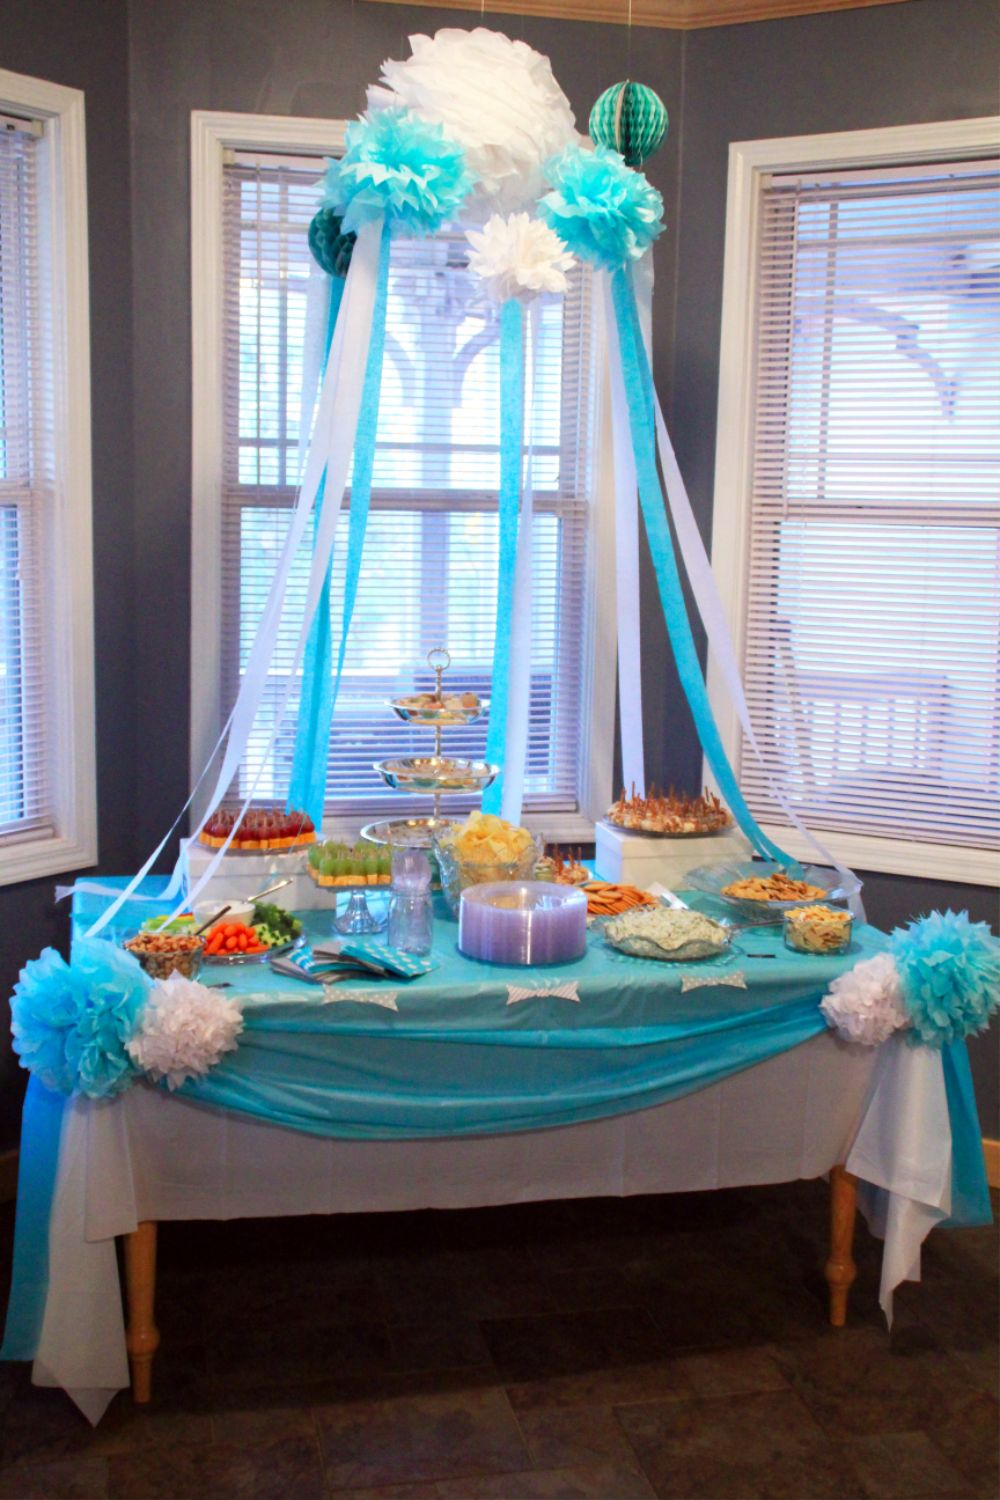 Baby shower decoration ideas southern couture for Baby shower decoration pictures ideas